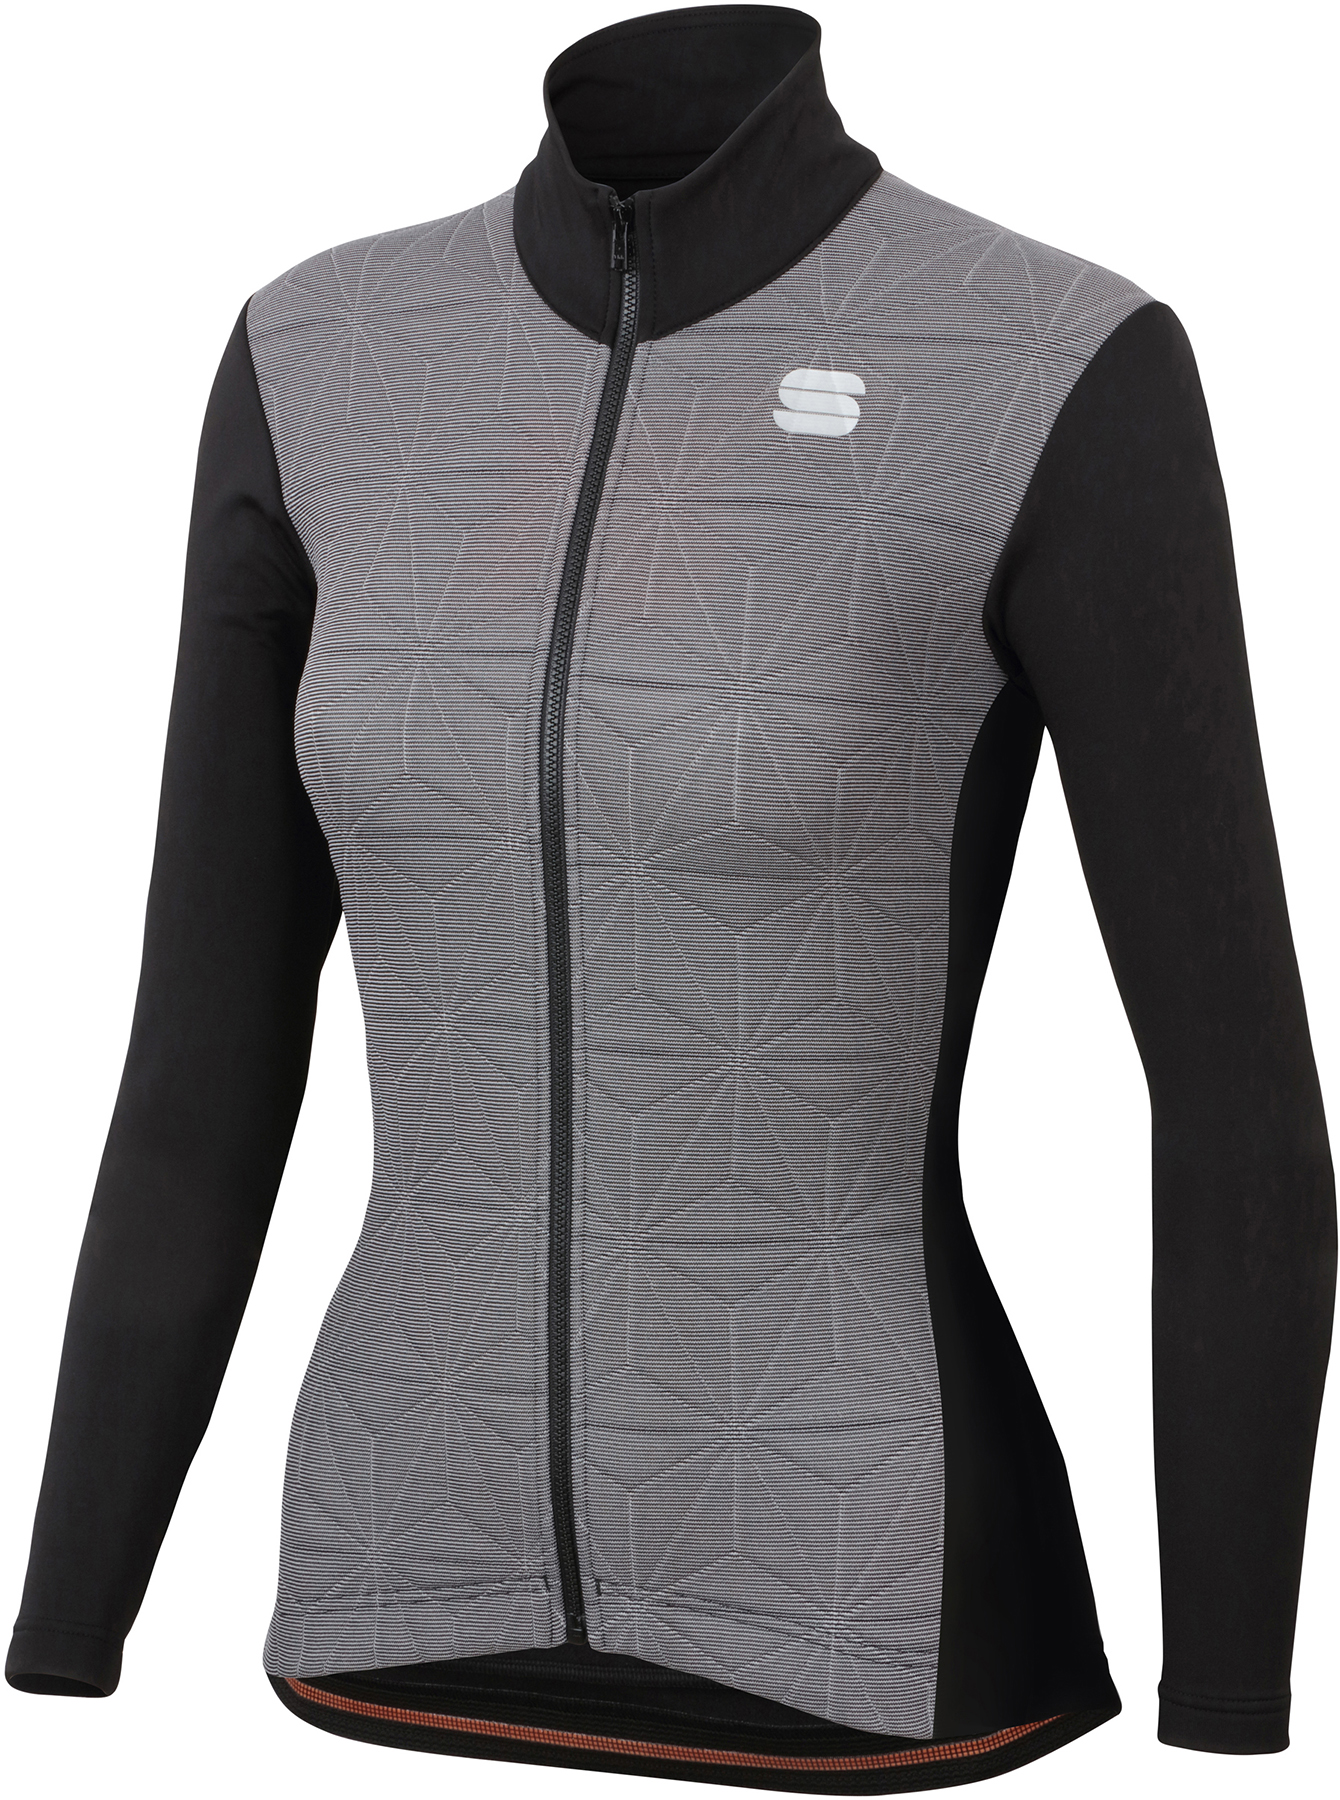 Sportful Women's Crystal Thermo Jacket | Jackets